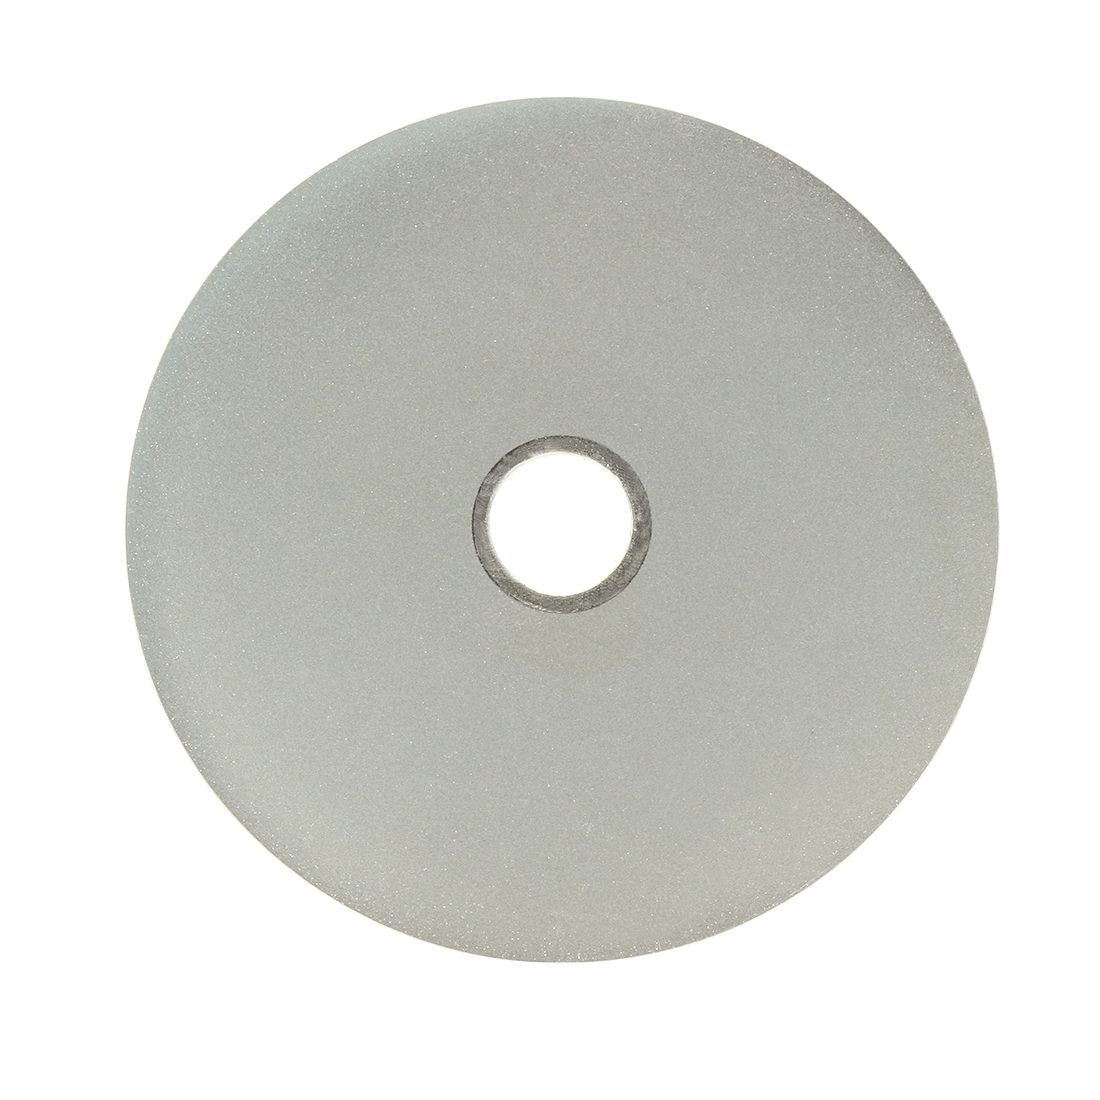 100mm 4-inch Grit 1500 Diamond Coated Flat Lap Disk Wheel Grinding Sanding Disc